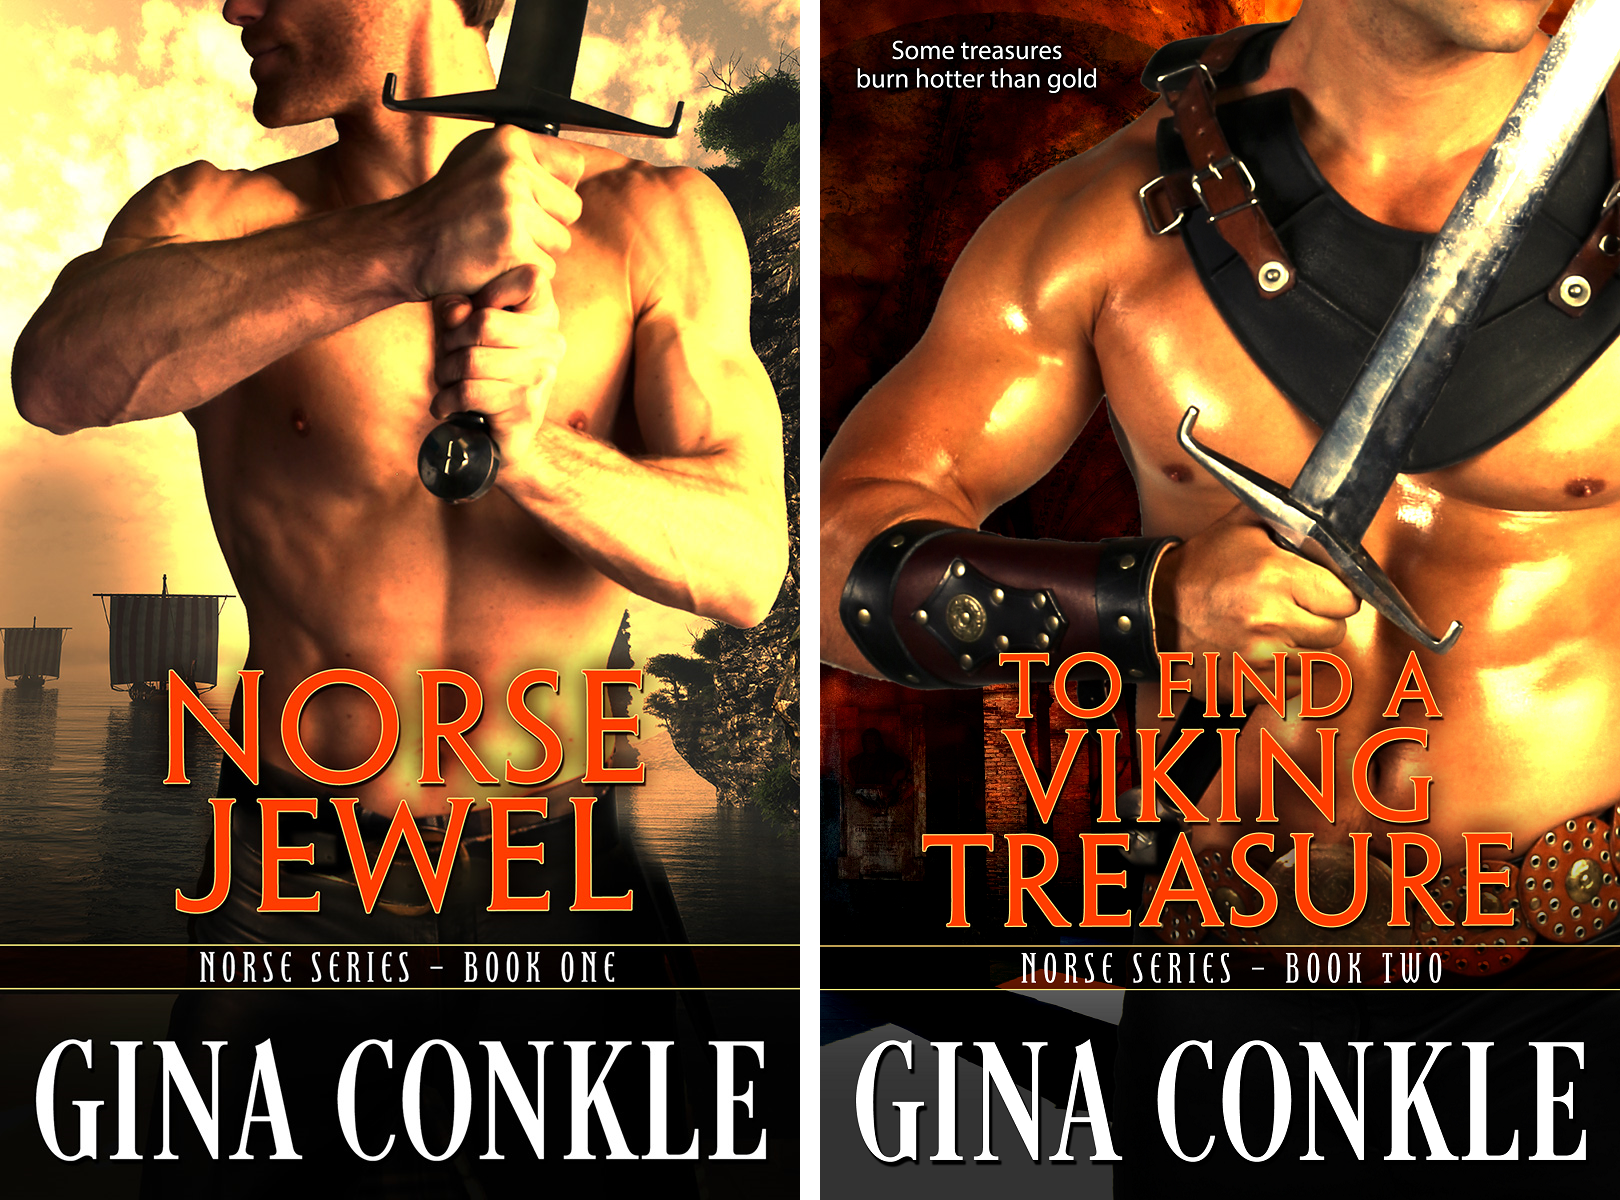 Guess which books are on sale for 99 cents? These two!